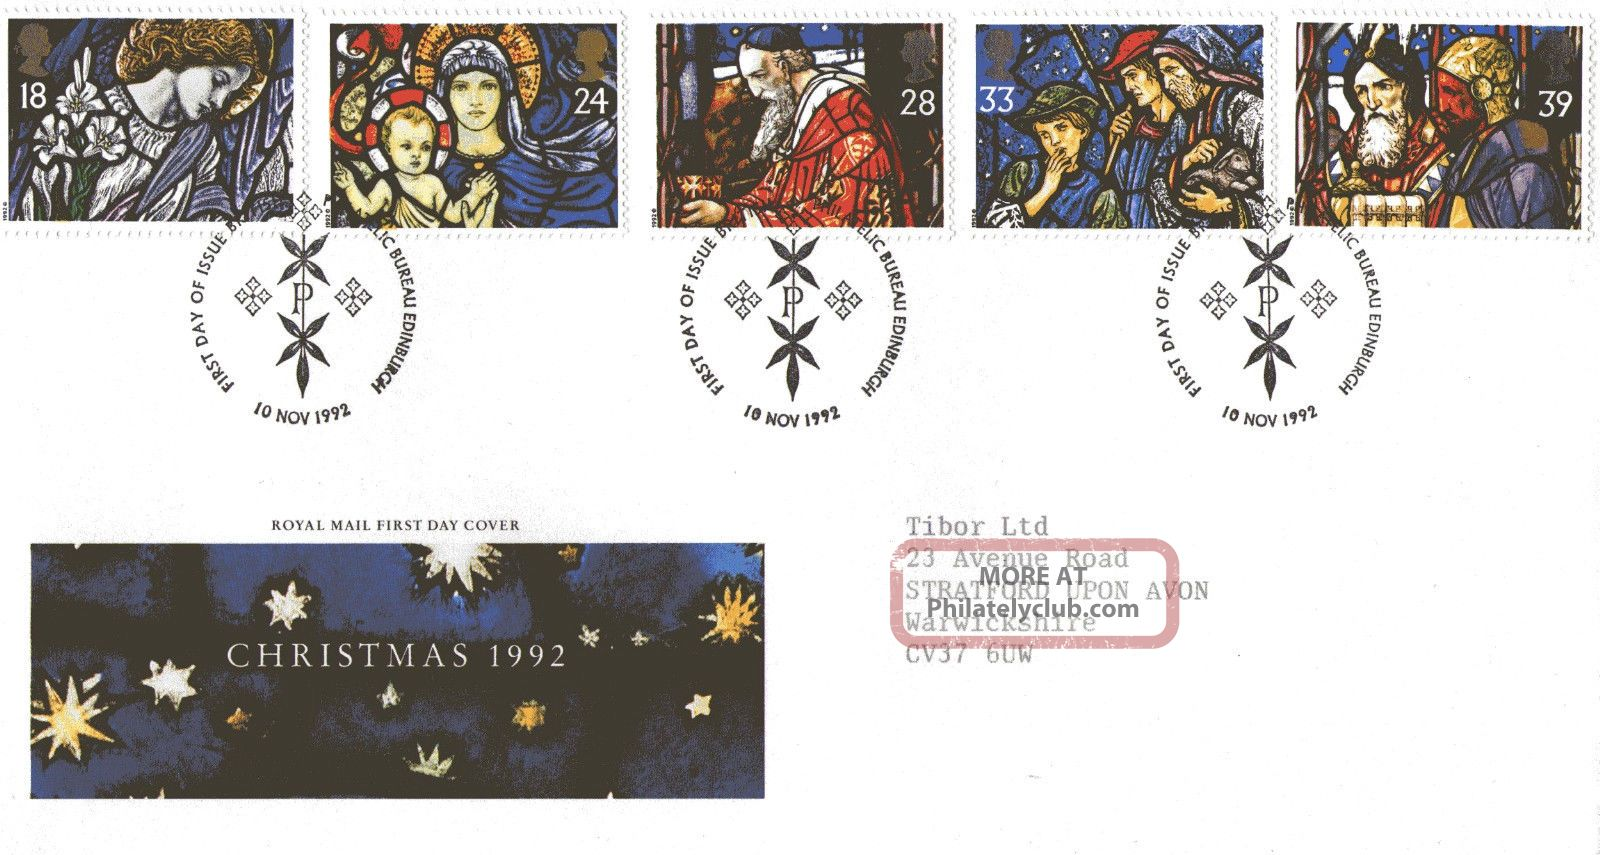 10 November 1992 Christmas Royal Mail First Day Cover Bureau Shs Topical Stamps photo